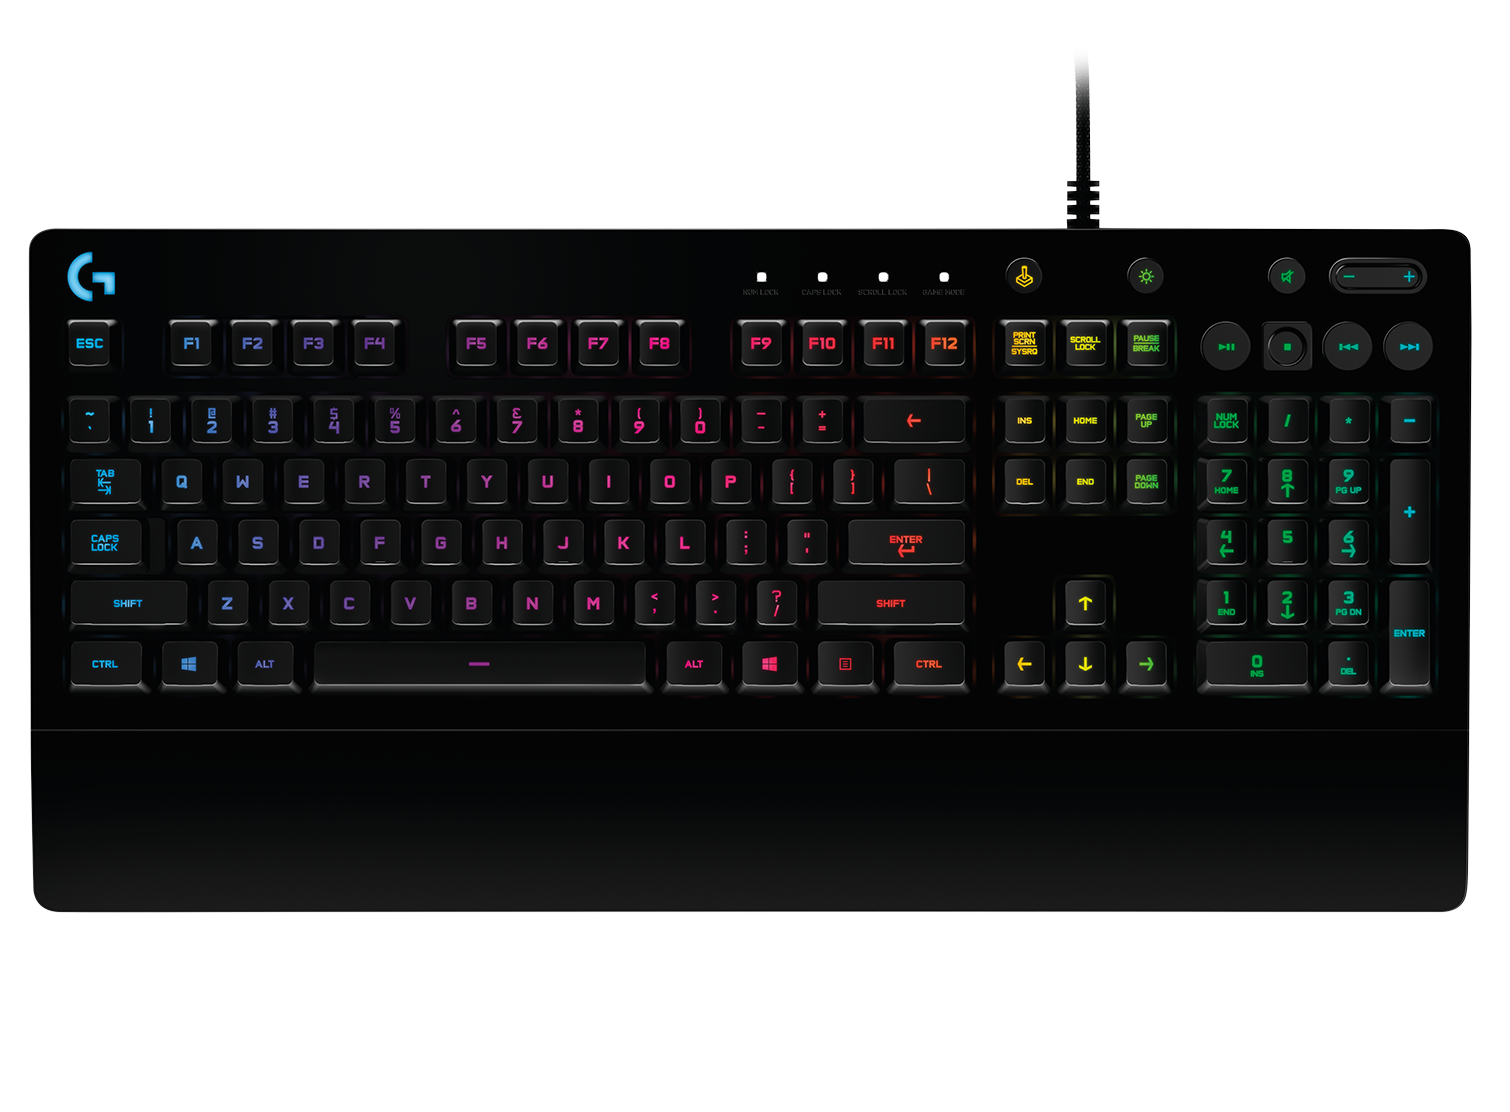 Logitech 920-008083 G213 Prodigy Gaming Keyboard W// 16.8 Million Lighting Colors